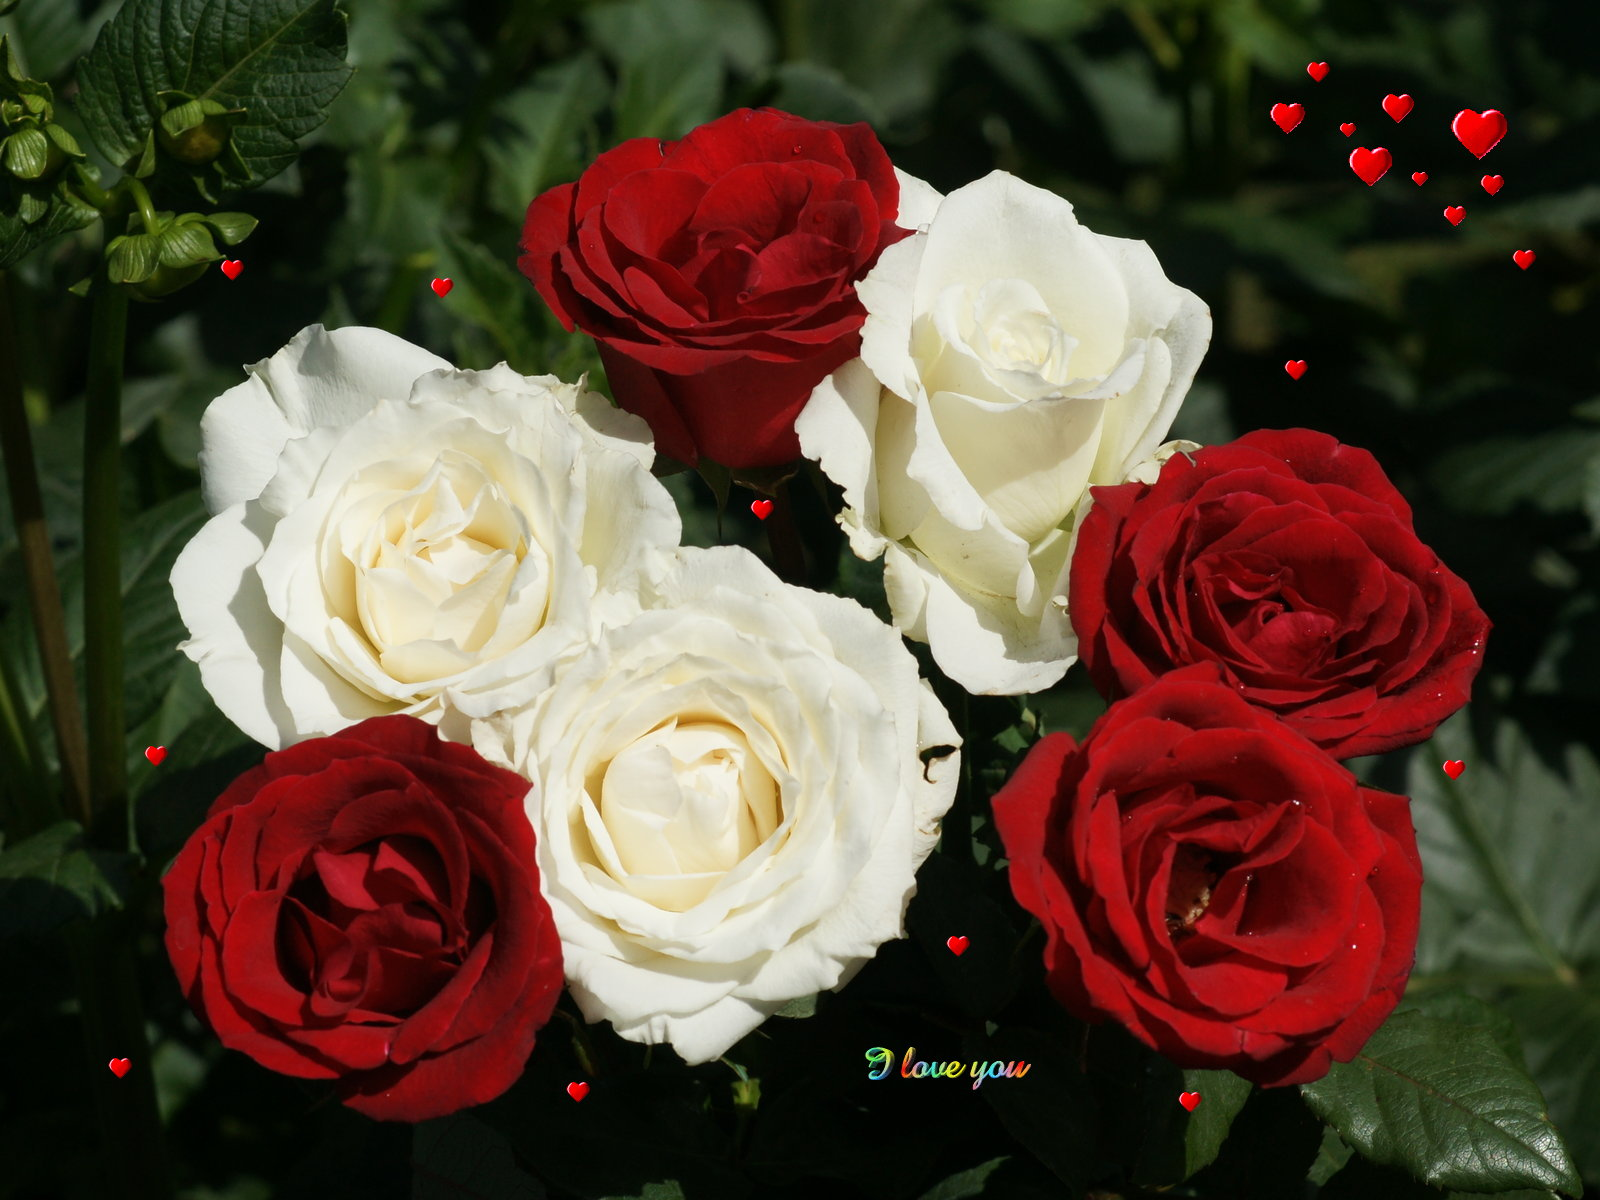 Knumathise red and white rose wallpaper images red and white rose wallpaper flowers mightylinksfo